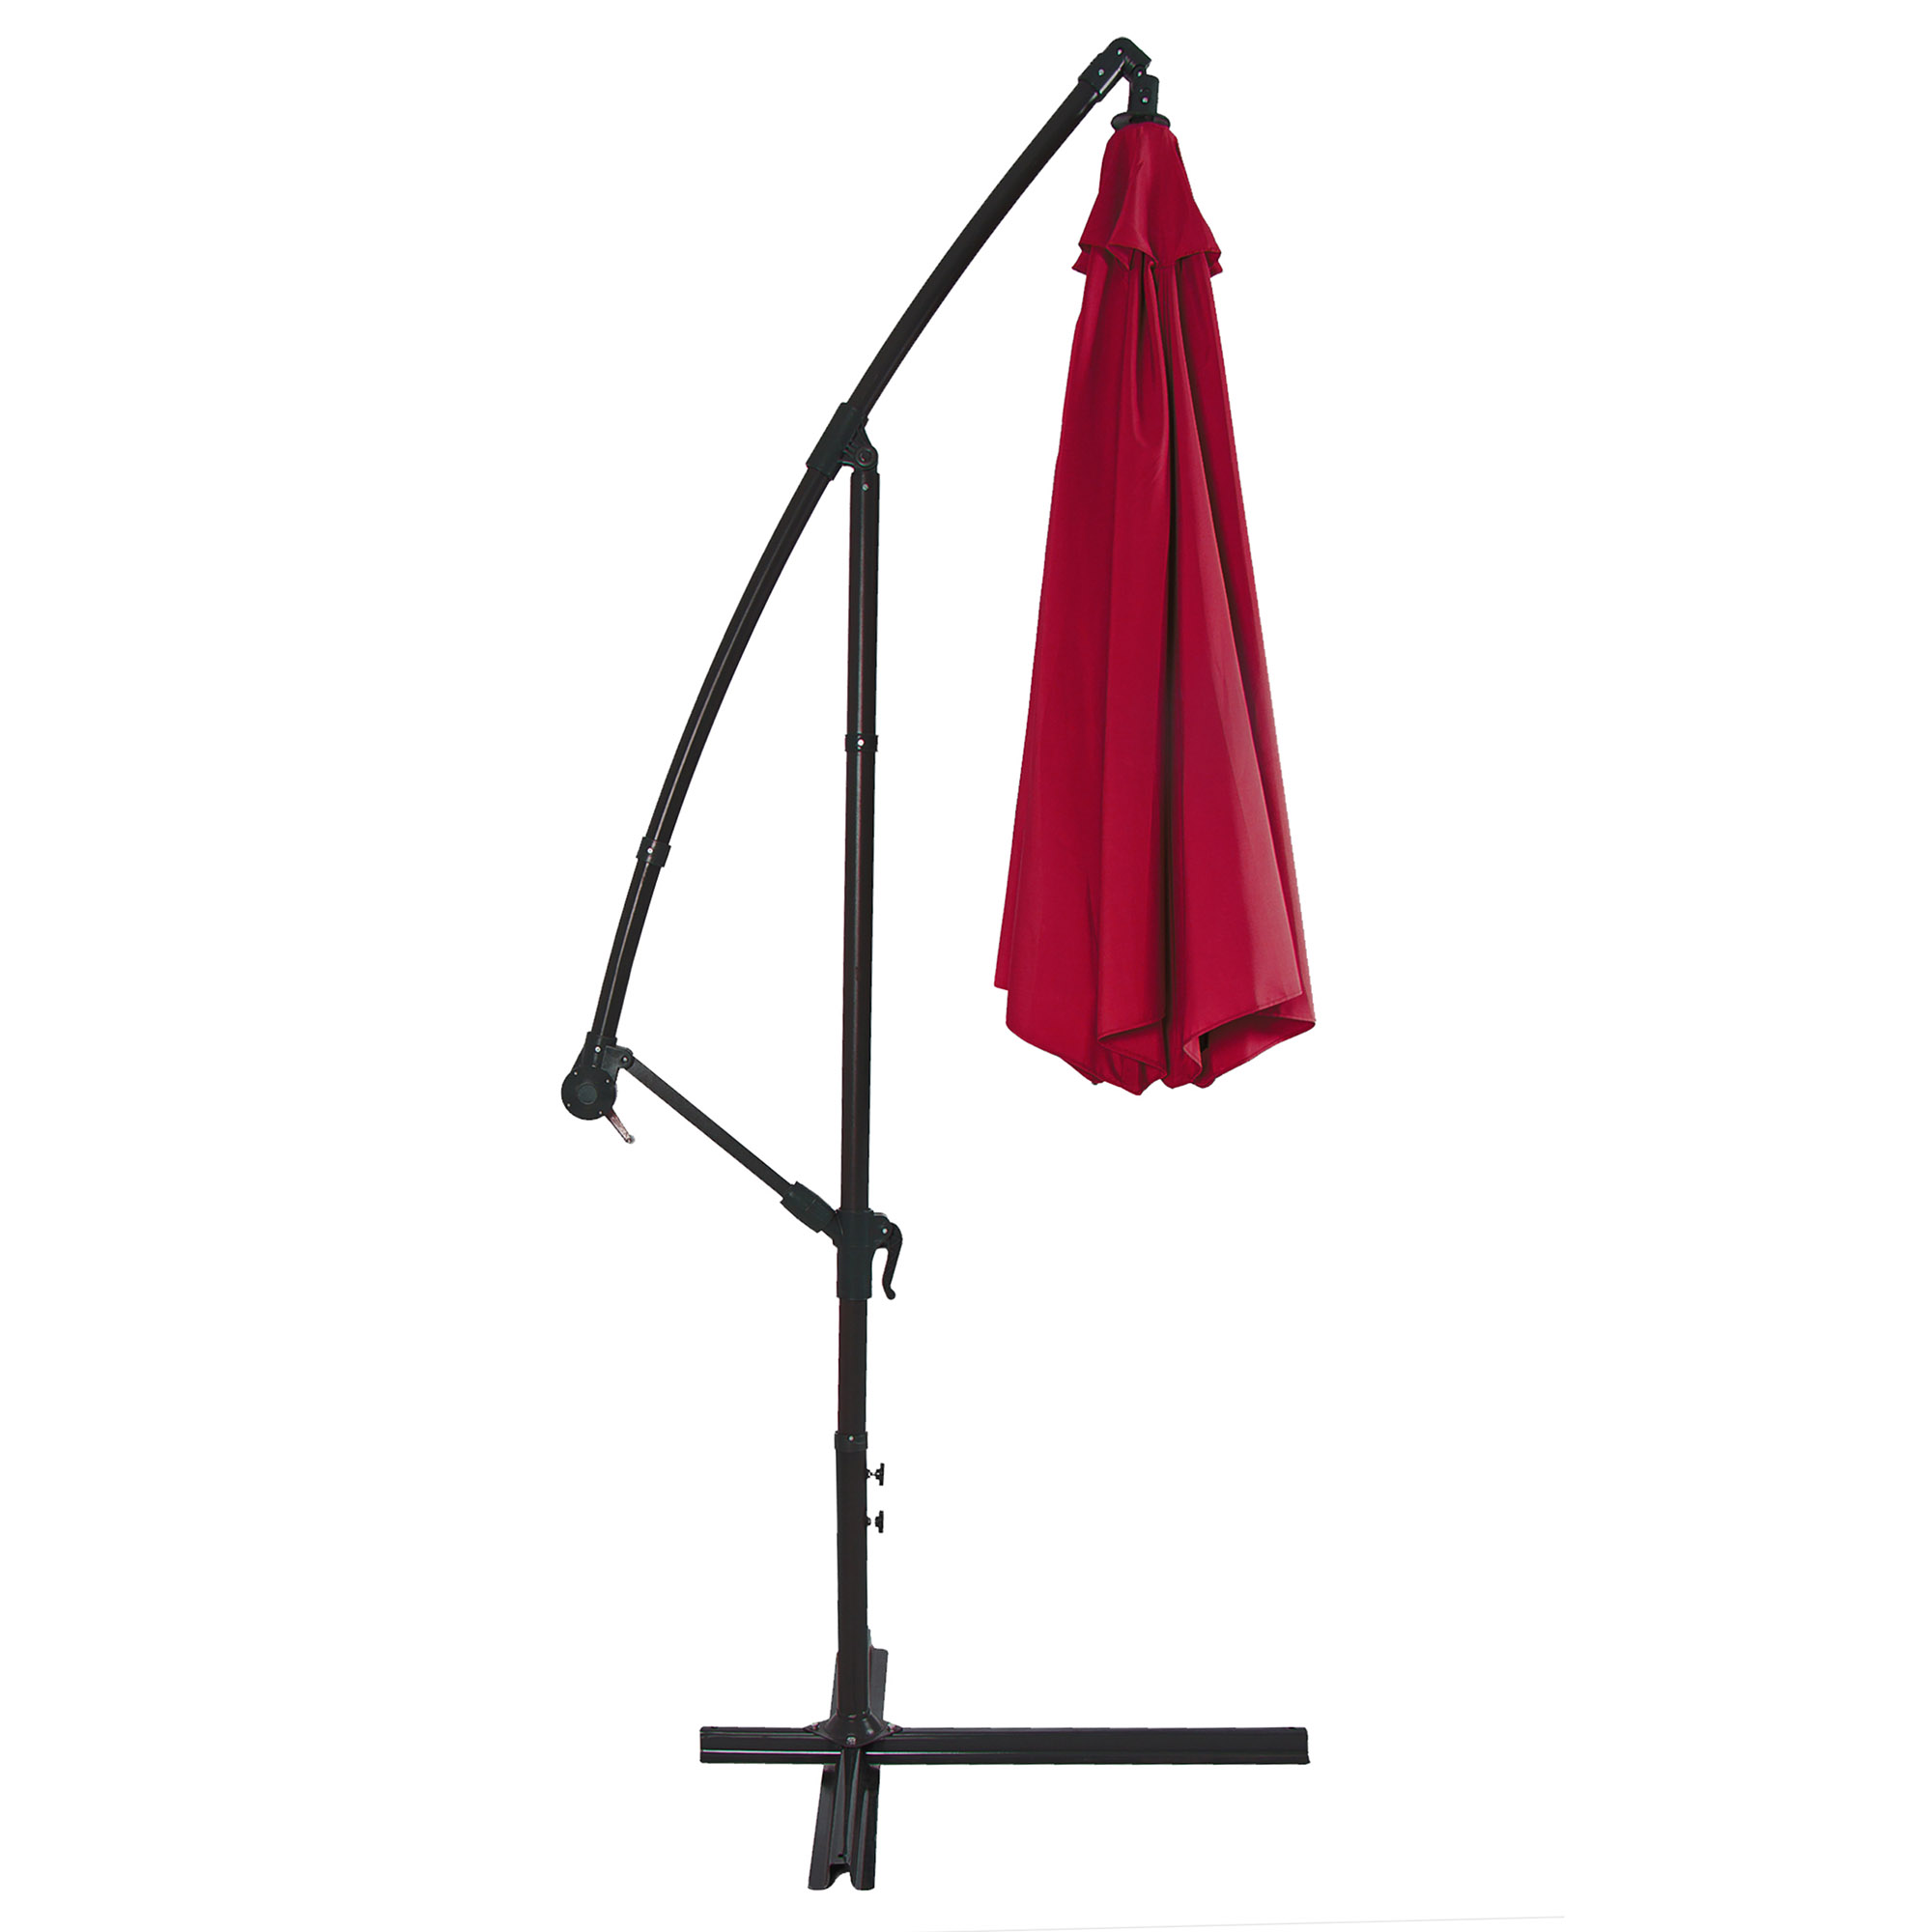 BCP-10ft-Offset-Hanging-Market-Patio-Umbrella-w-Tilt-Adjustment-Hand-Crank thumbnail 39